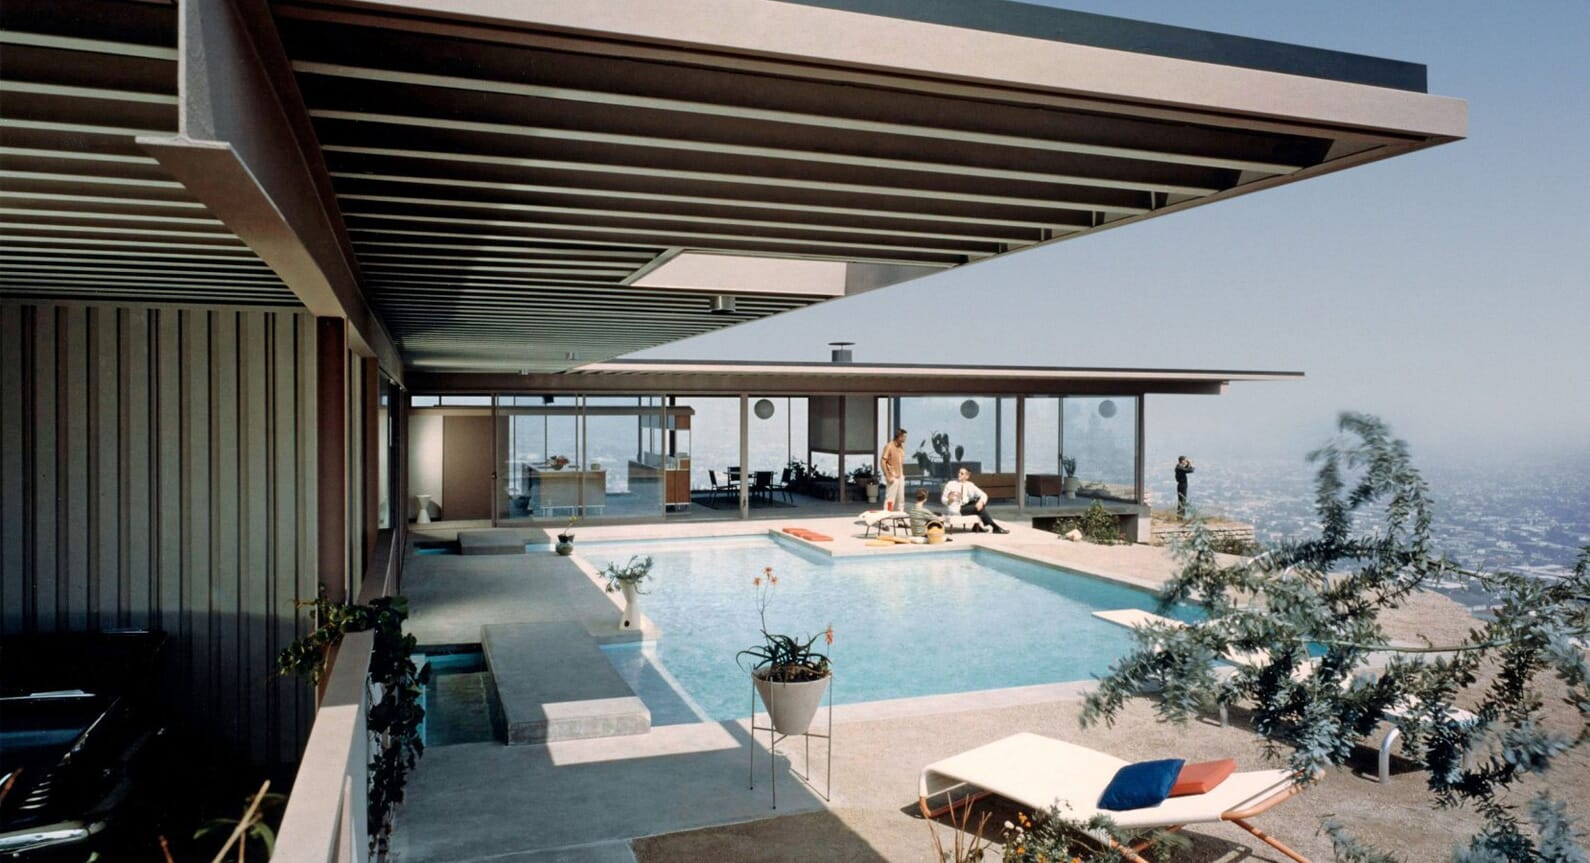 Inside Utopia: Explore The Enduring Legacy Of Post-War Modernism